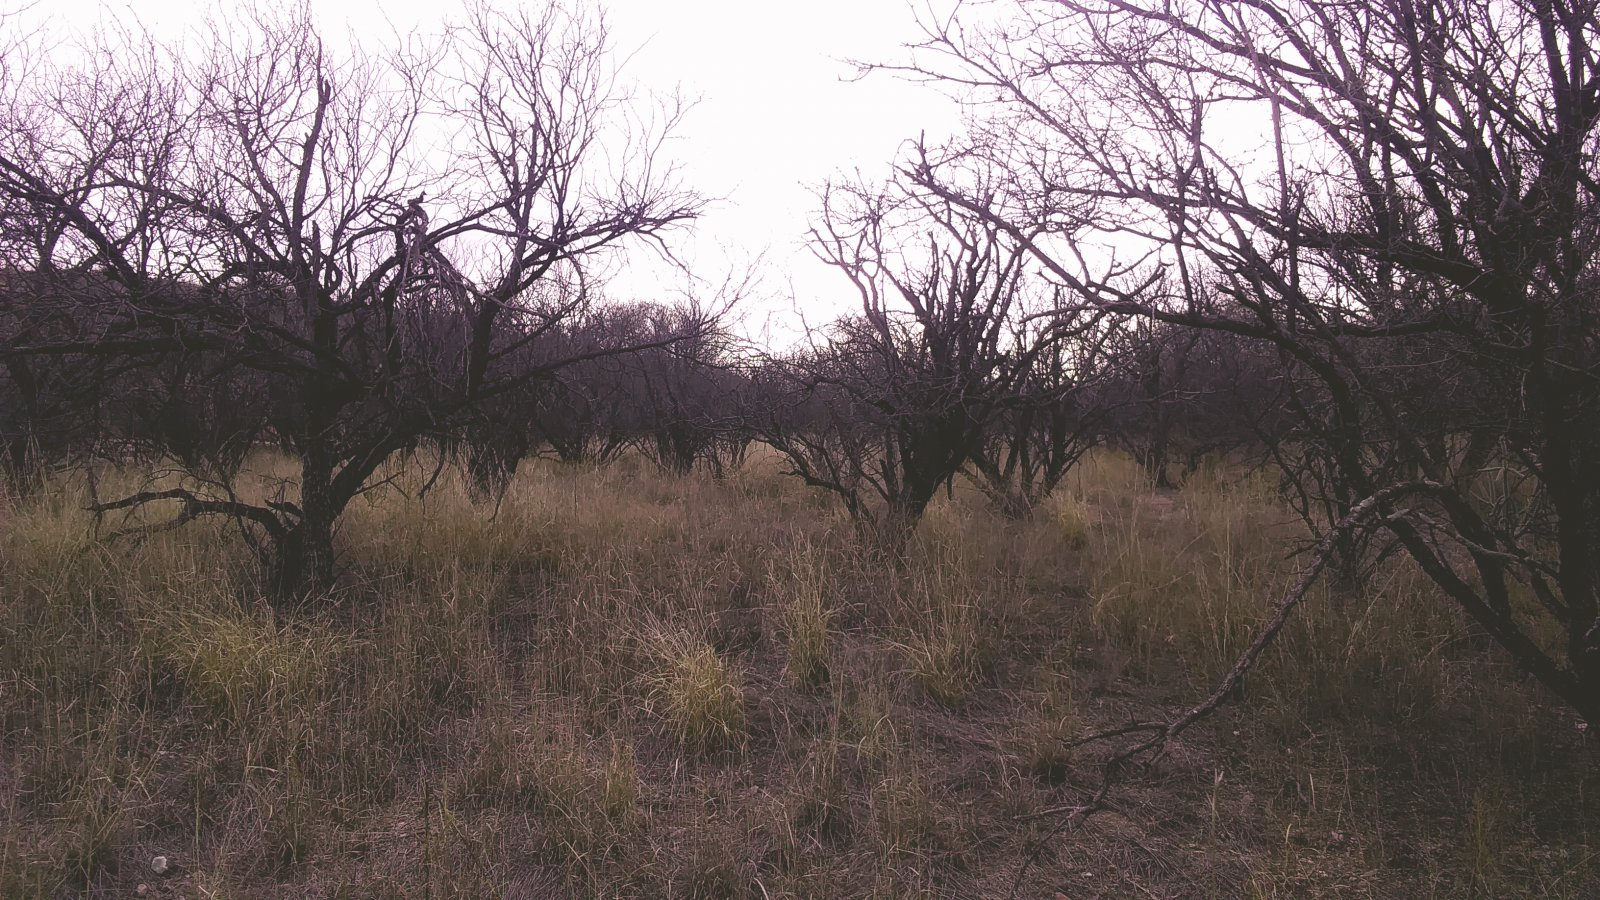 Standing at center of property facing WSW, showing mesquite trees